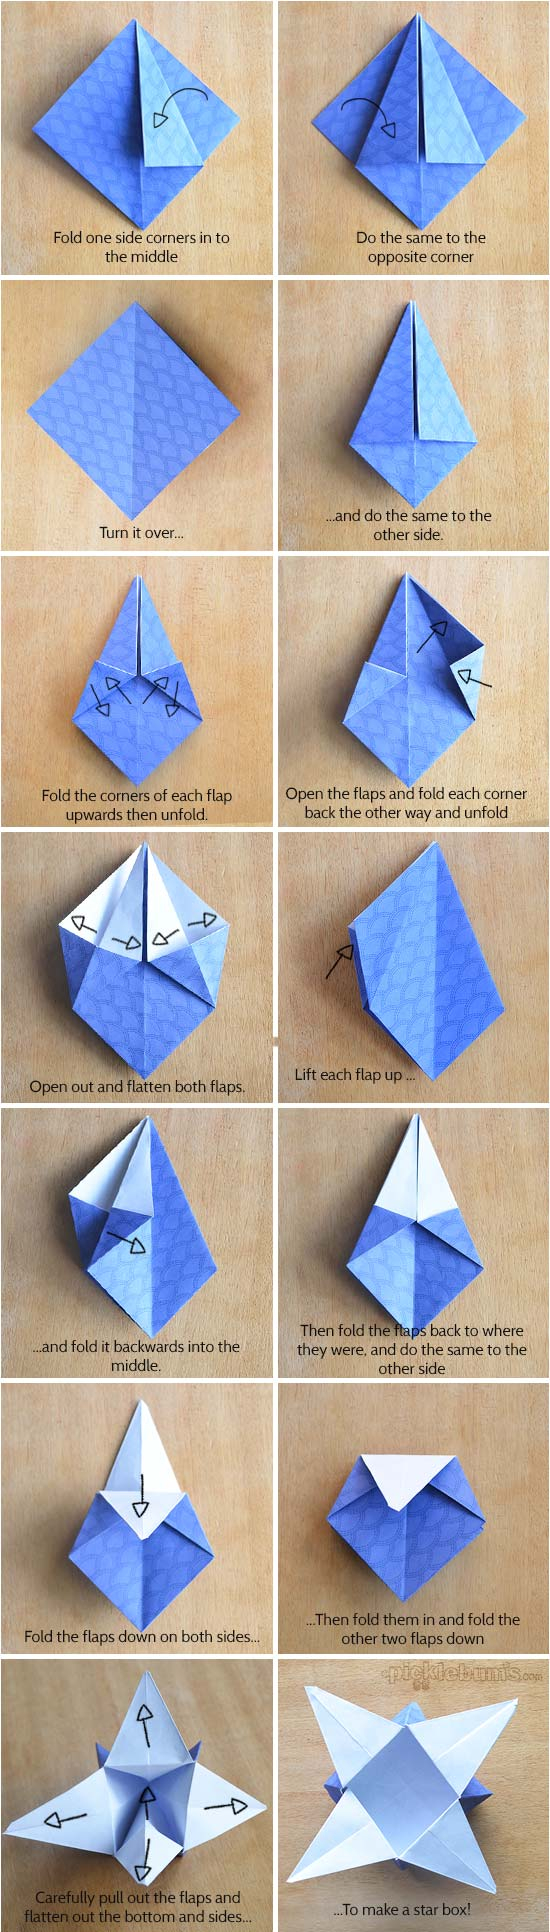 Printable Origami Box Instructions Origami Star Boxes With Printable Origami Paper Picklebums